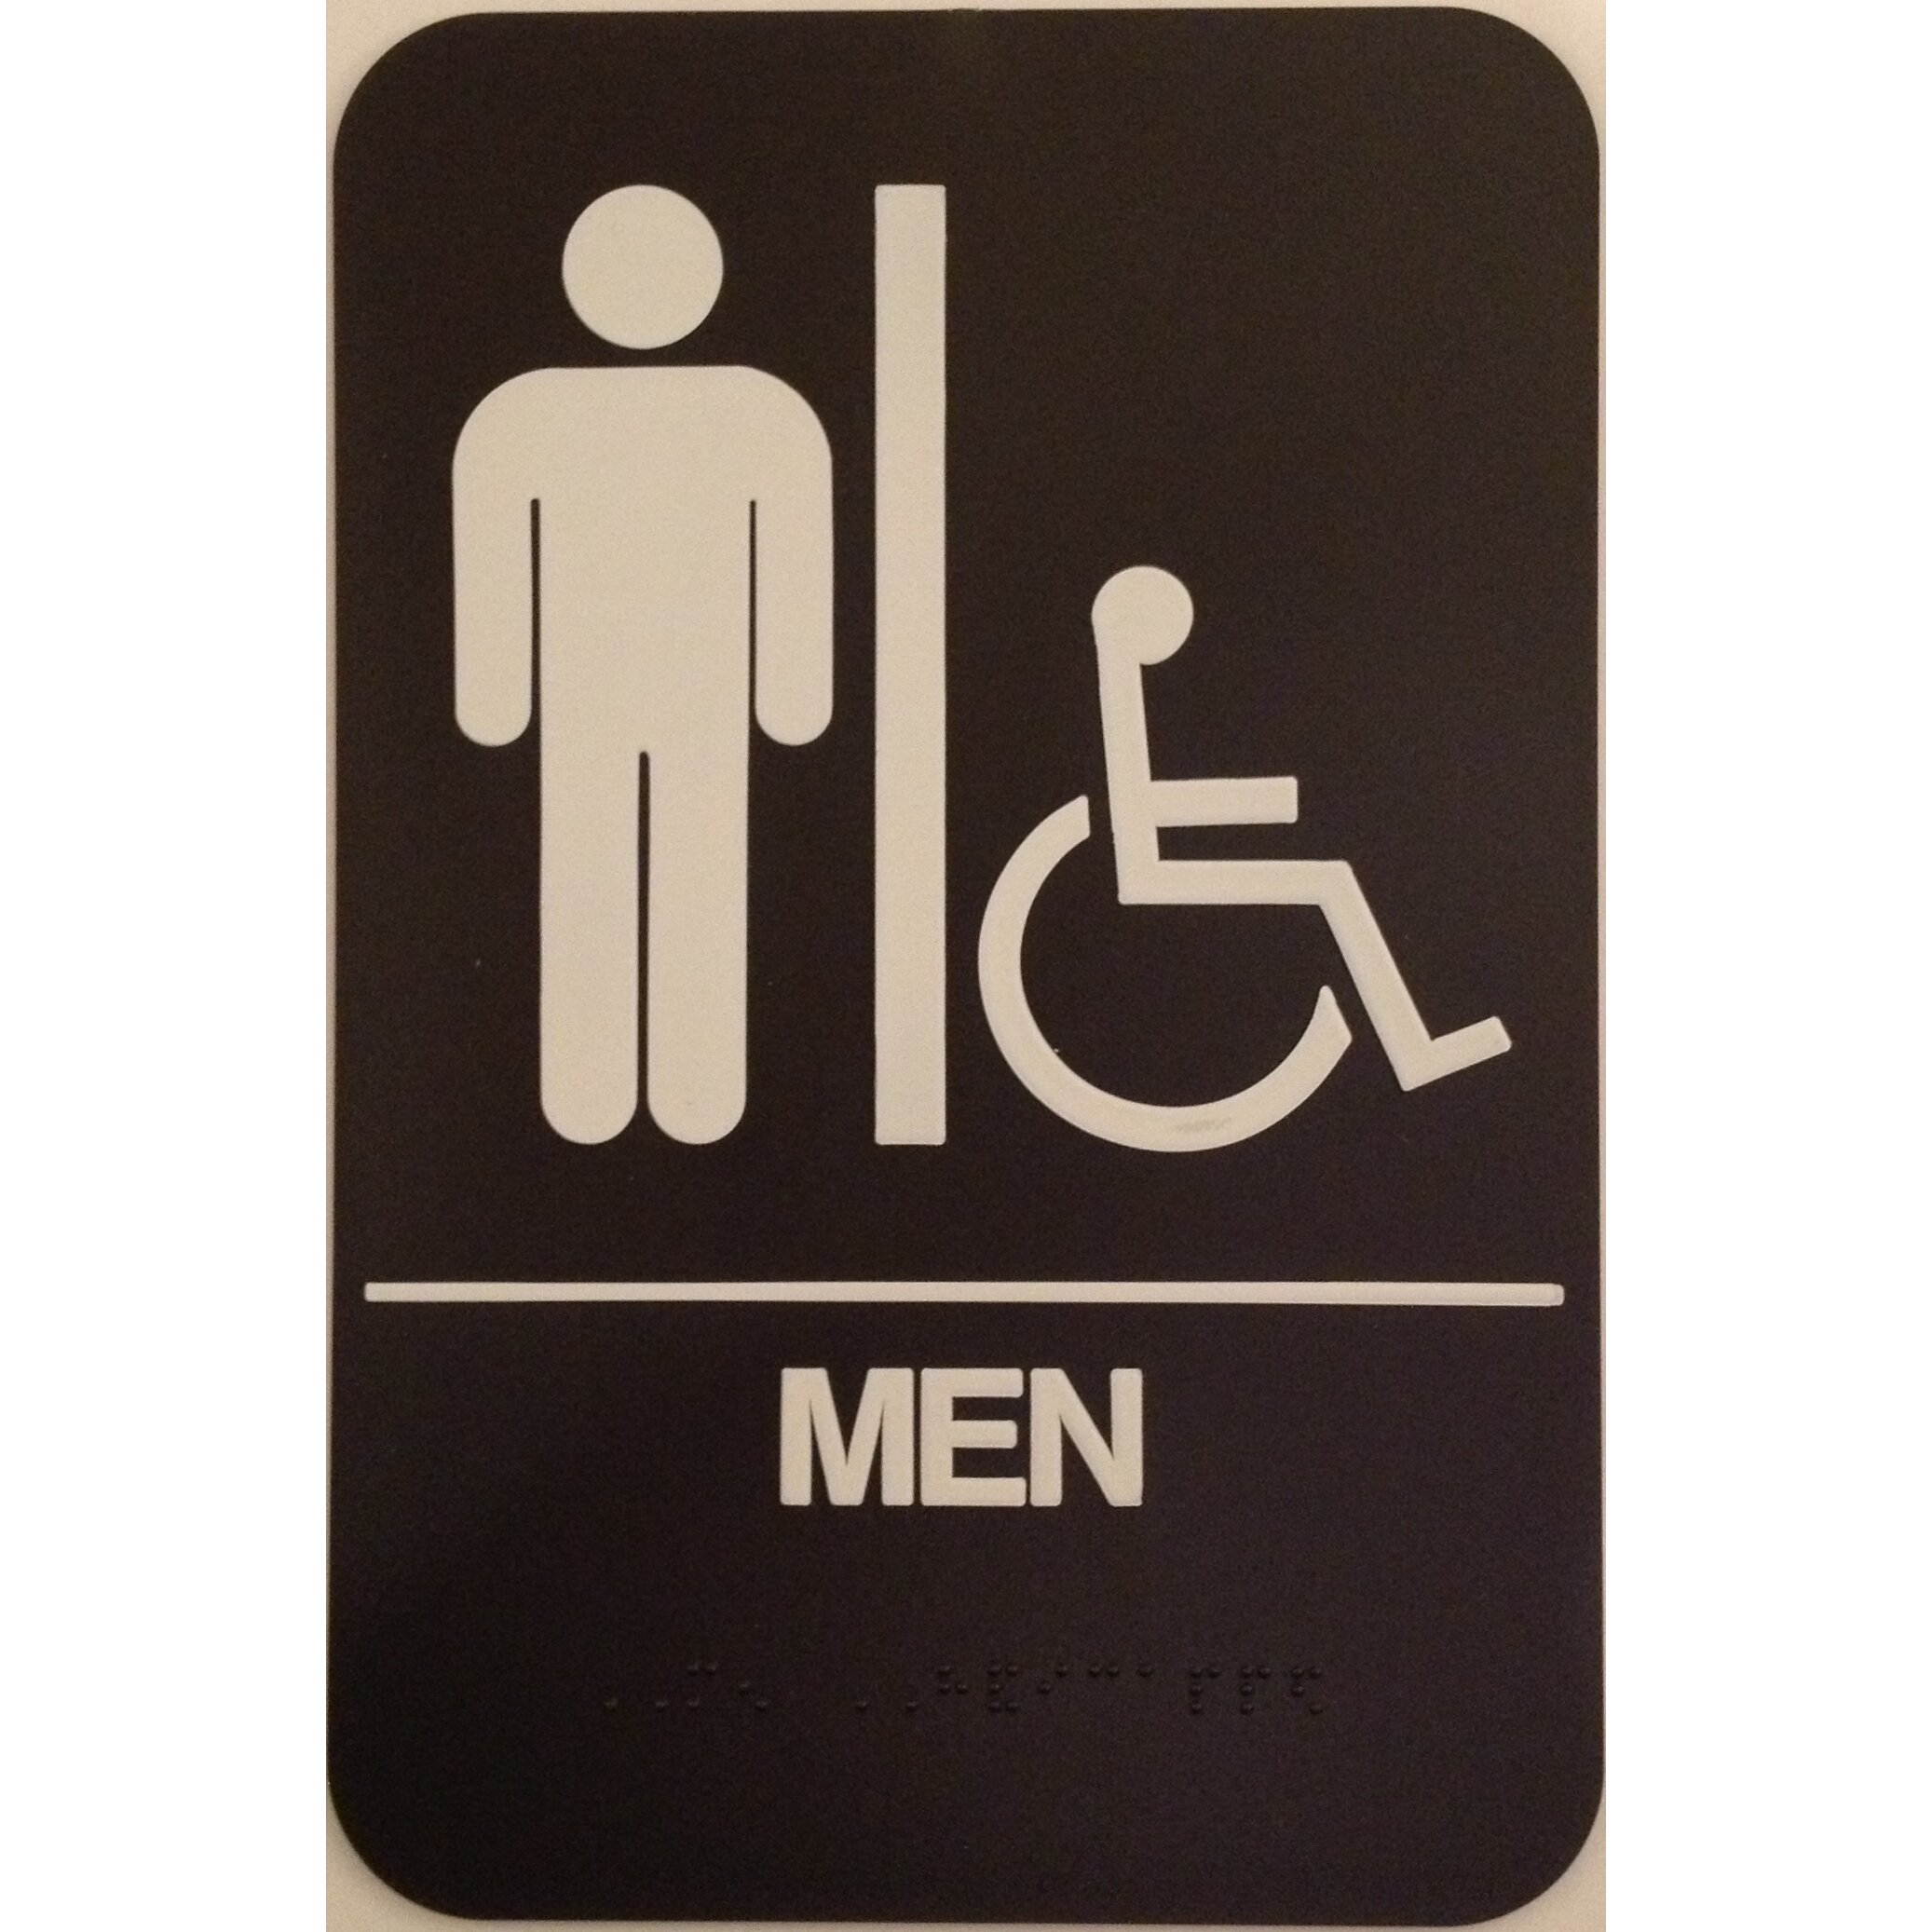 Men 39 S Handicap Restroom Sign Wayfair